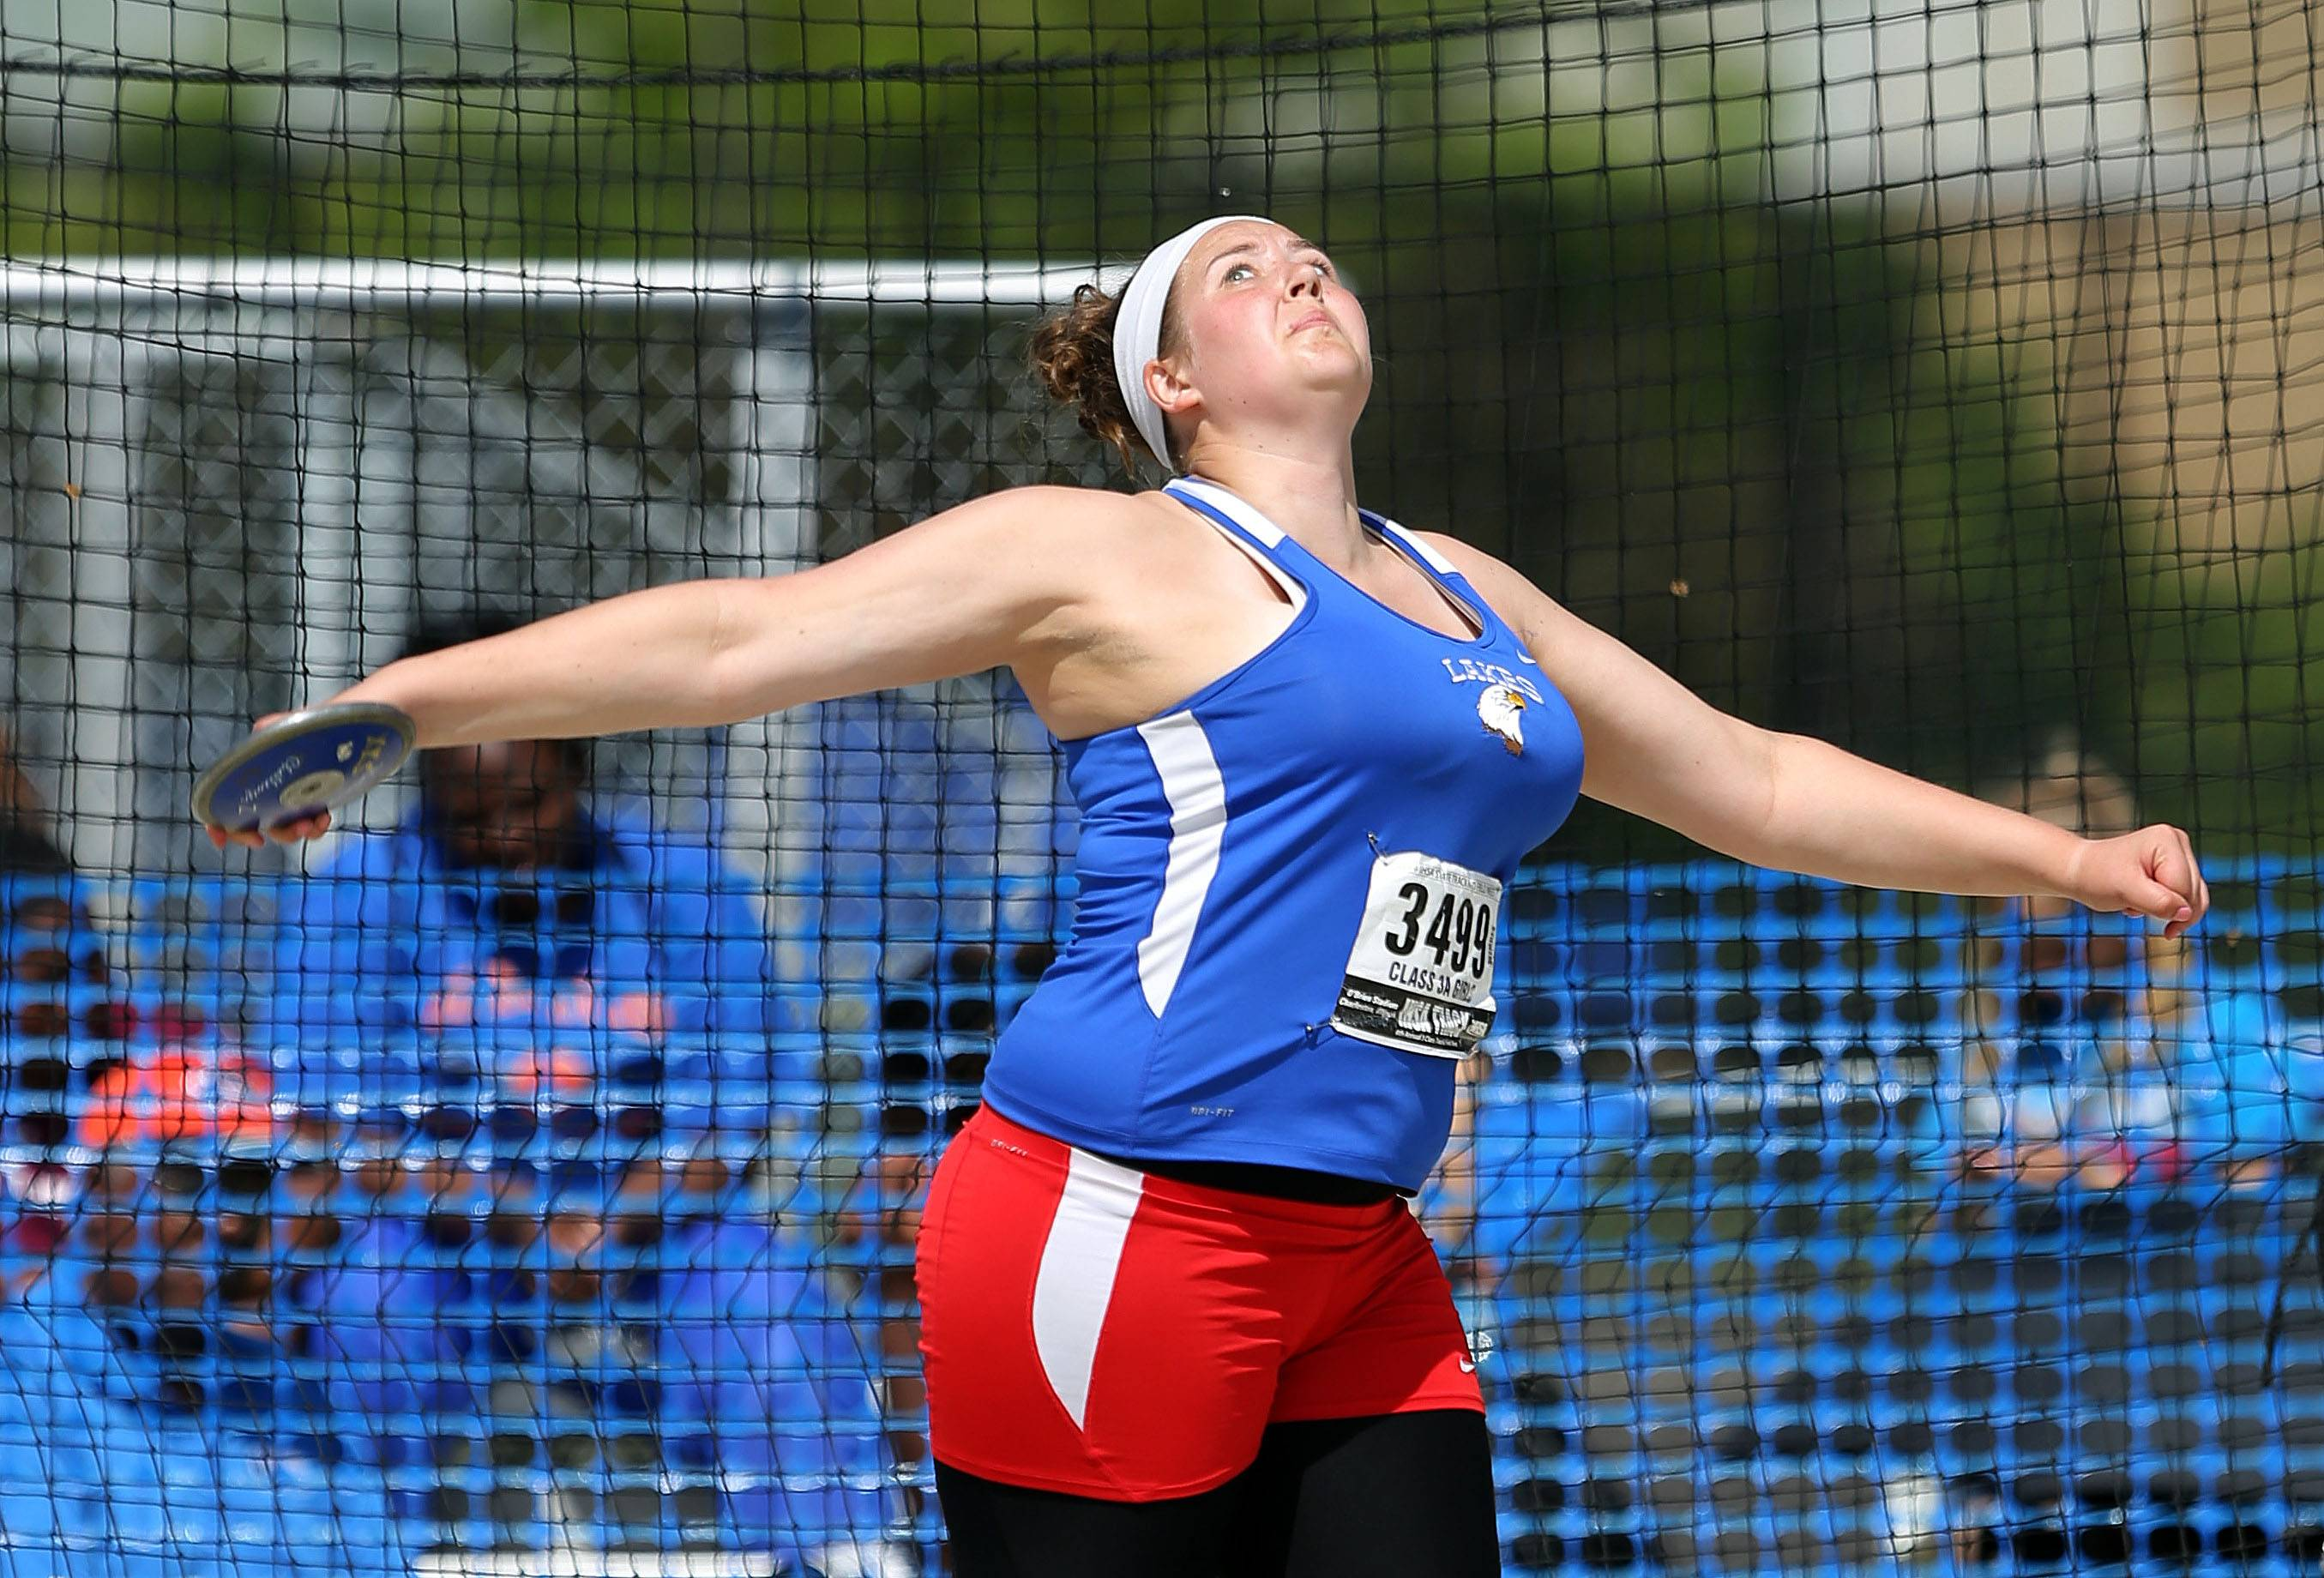 Emily Webster, here competing for Lakes in the Illinois high school championships, is excelling in the throws for Augustana's track and field program this spring.